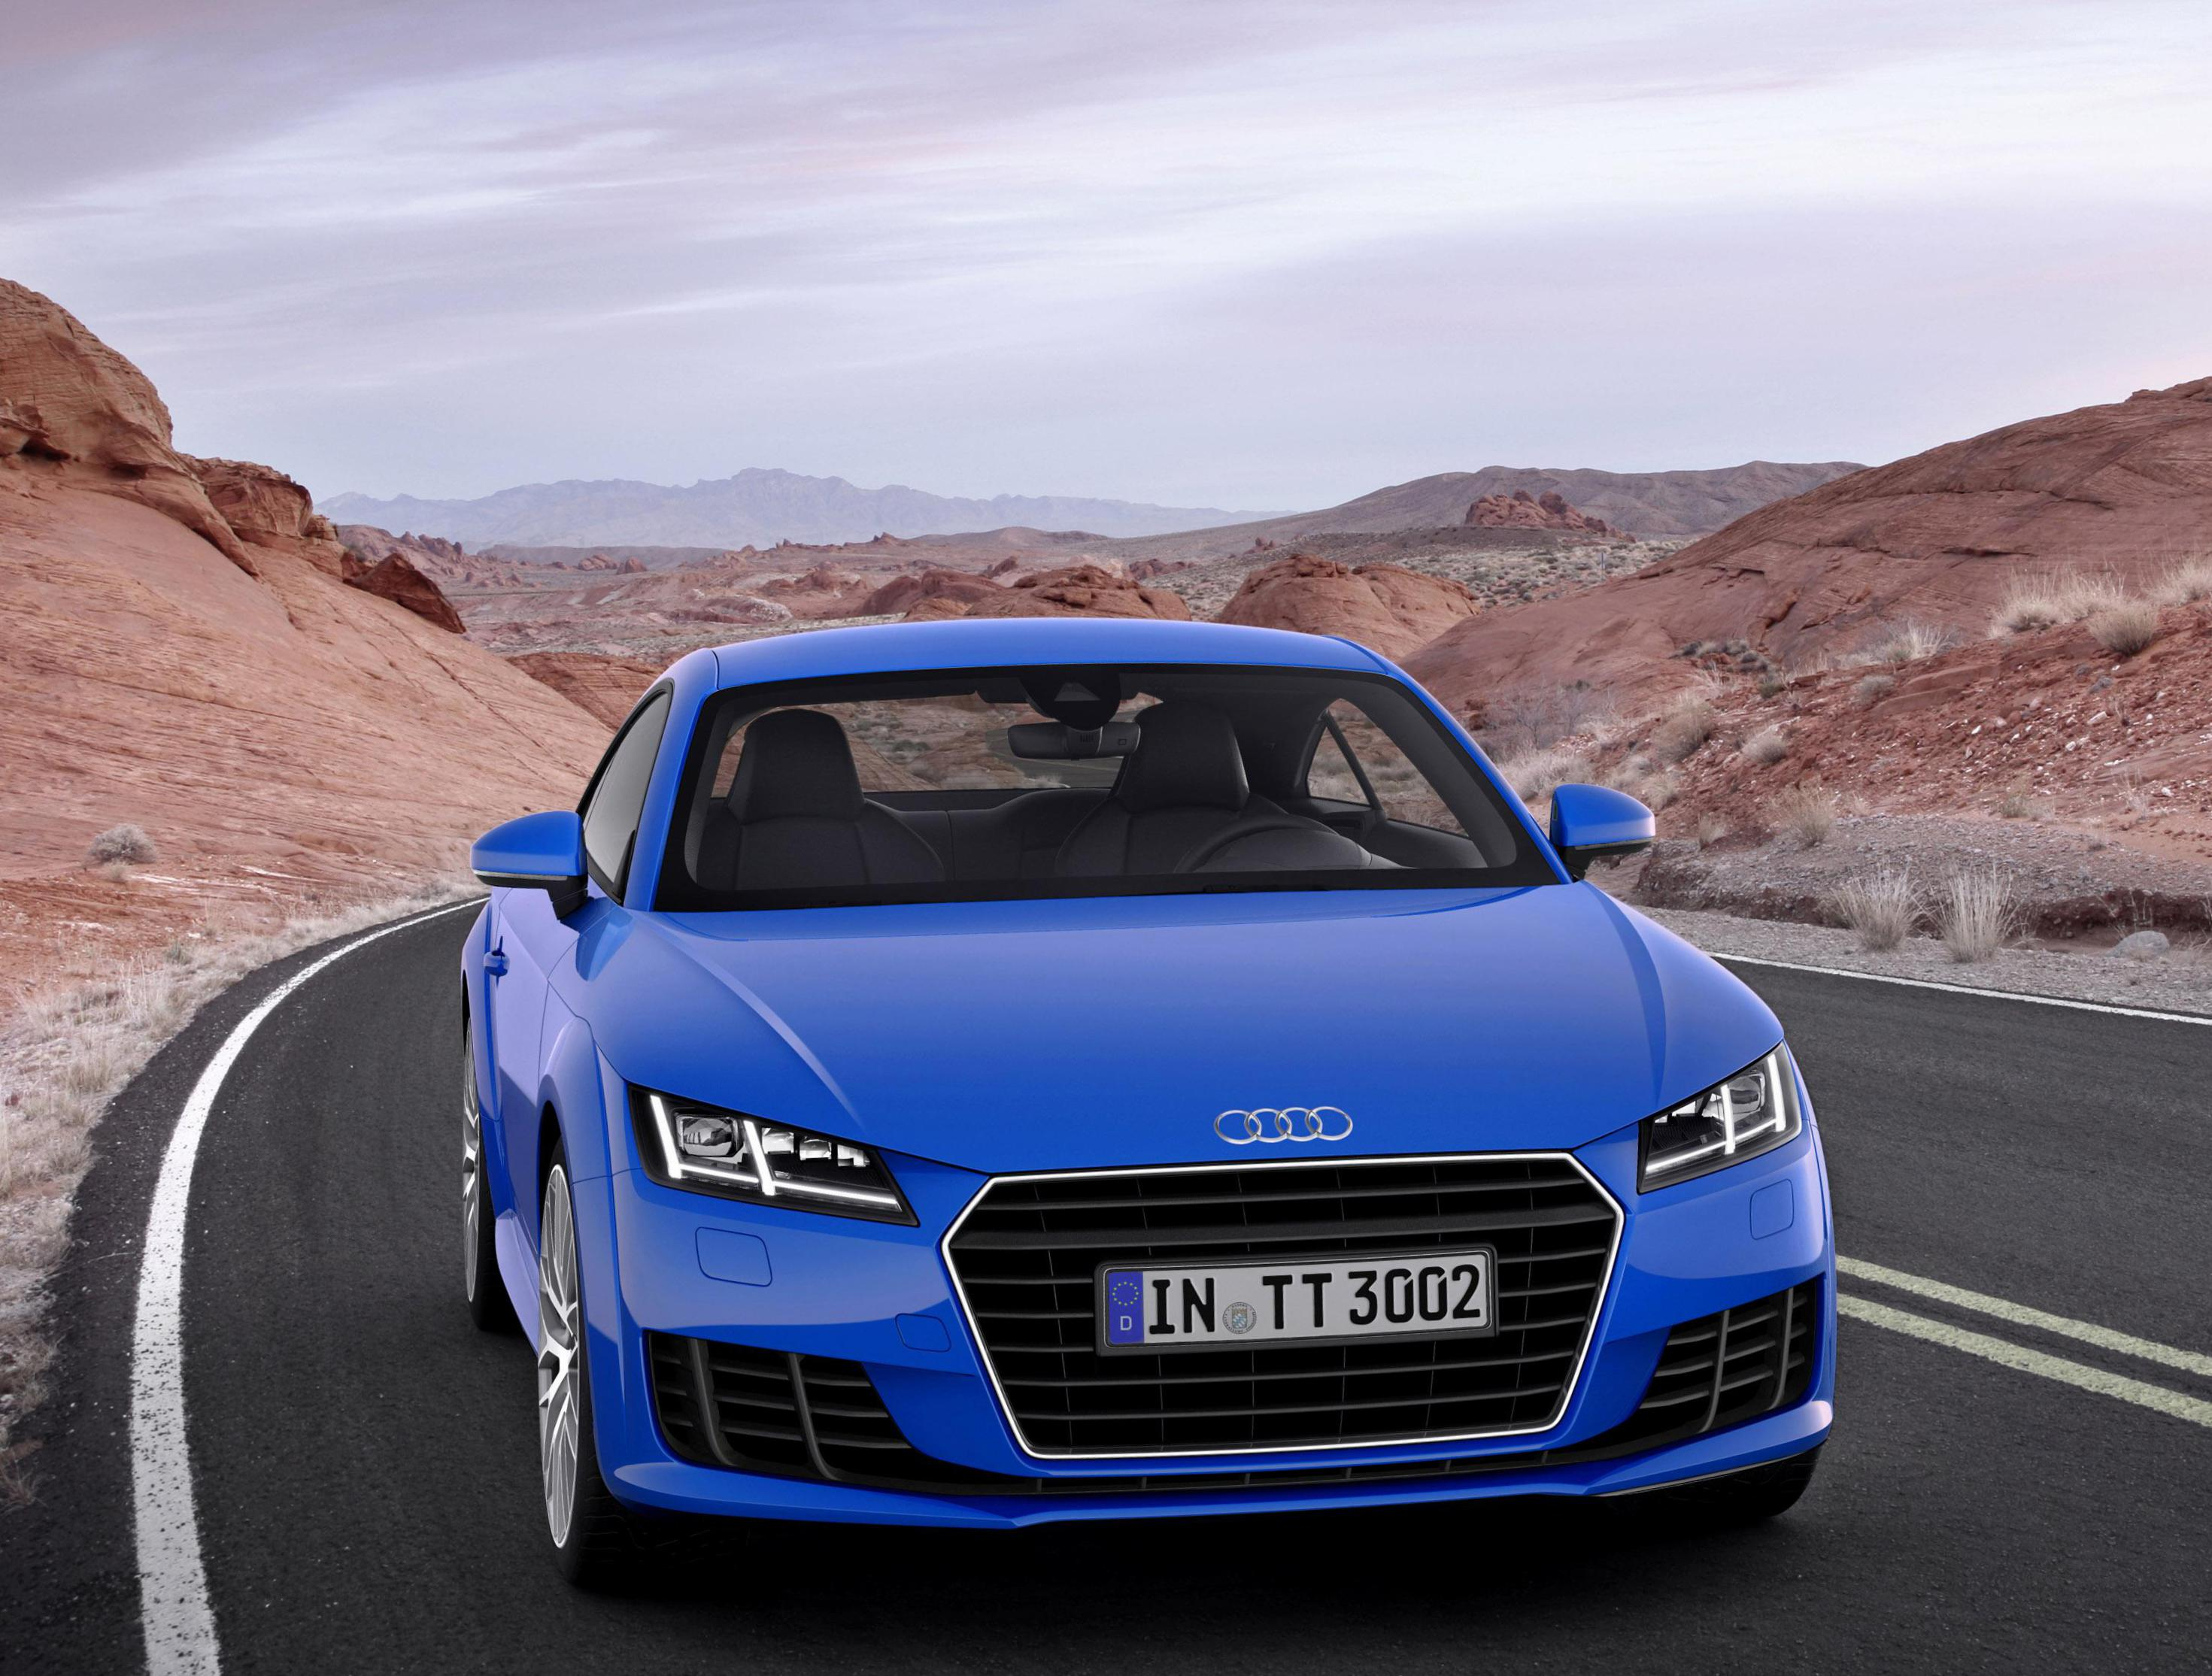 Audi TT Coupe Specifications 2013